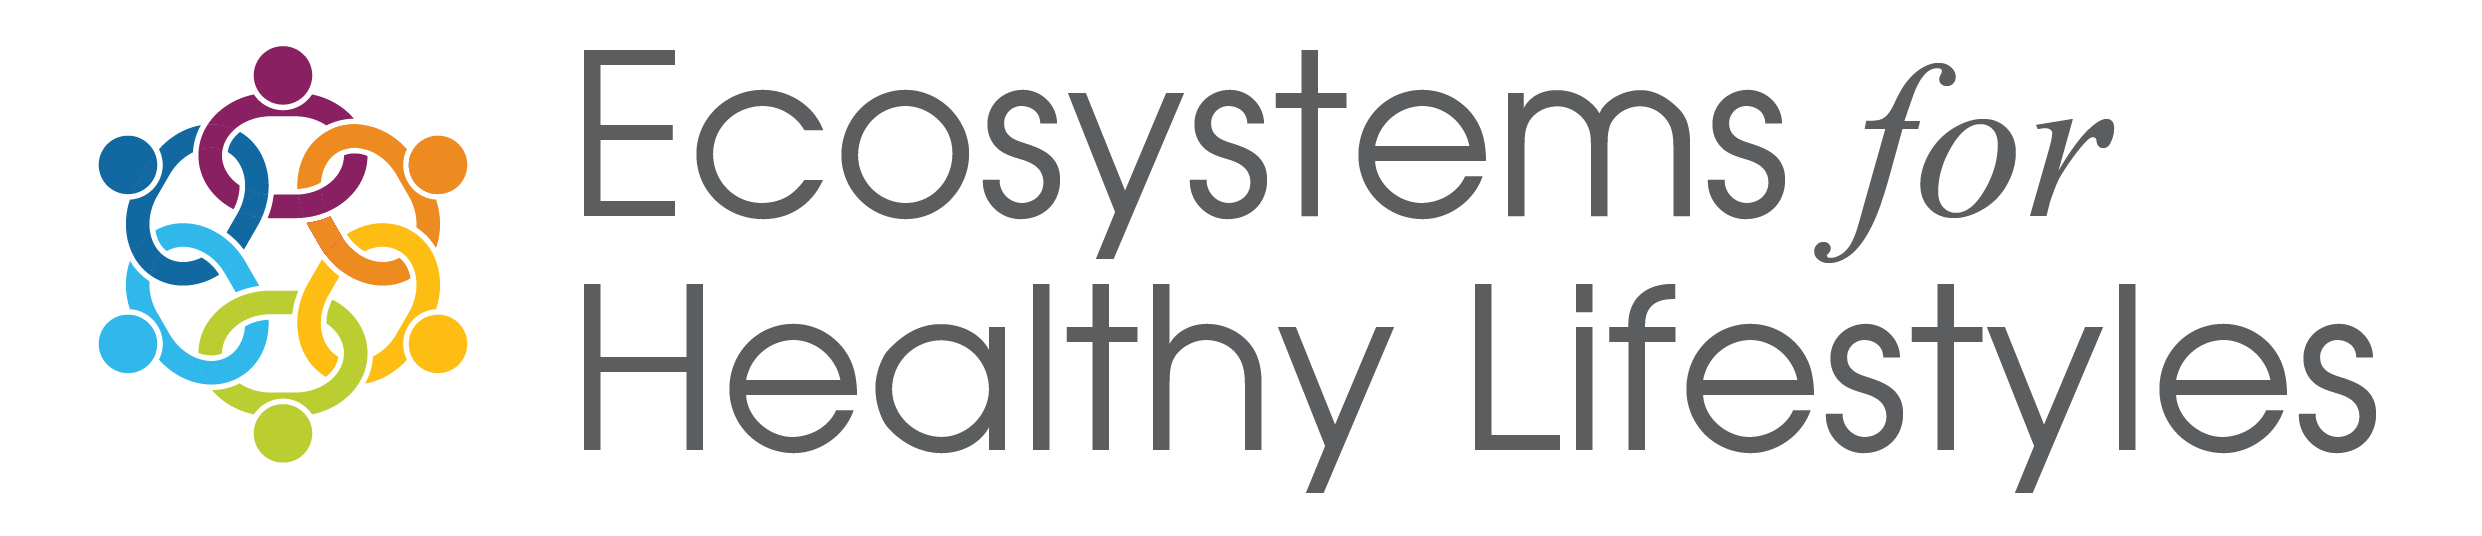 Ecosystems for Healthy Lifestyles Logo